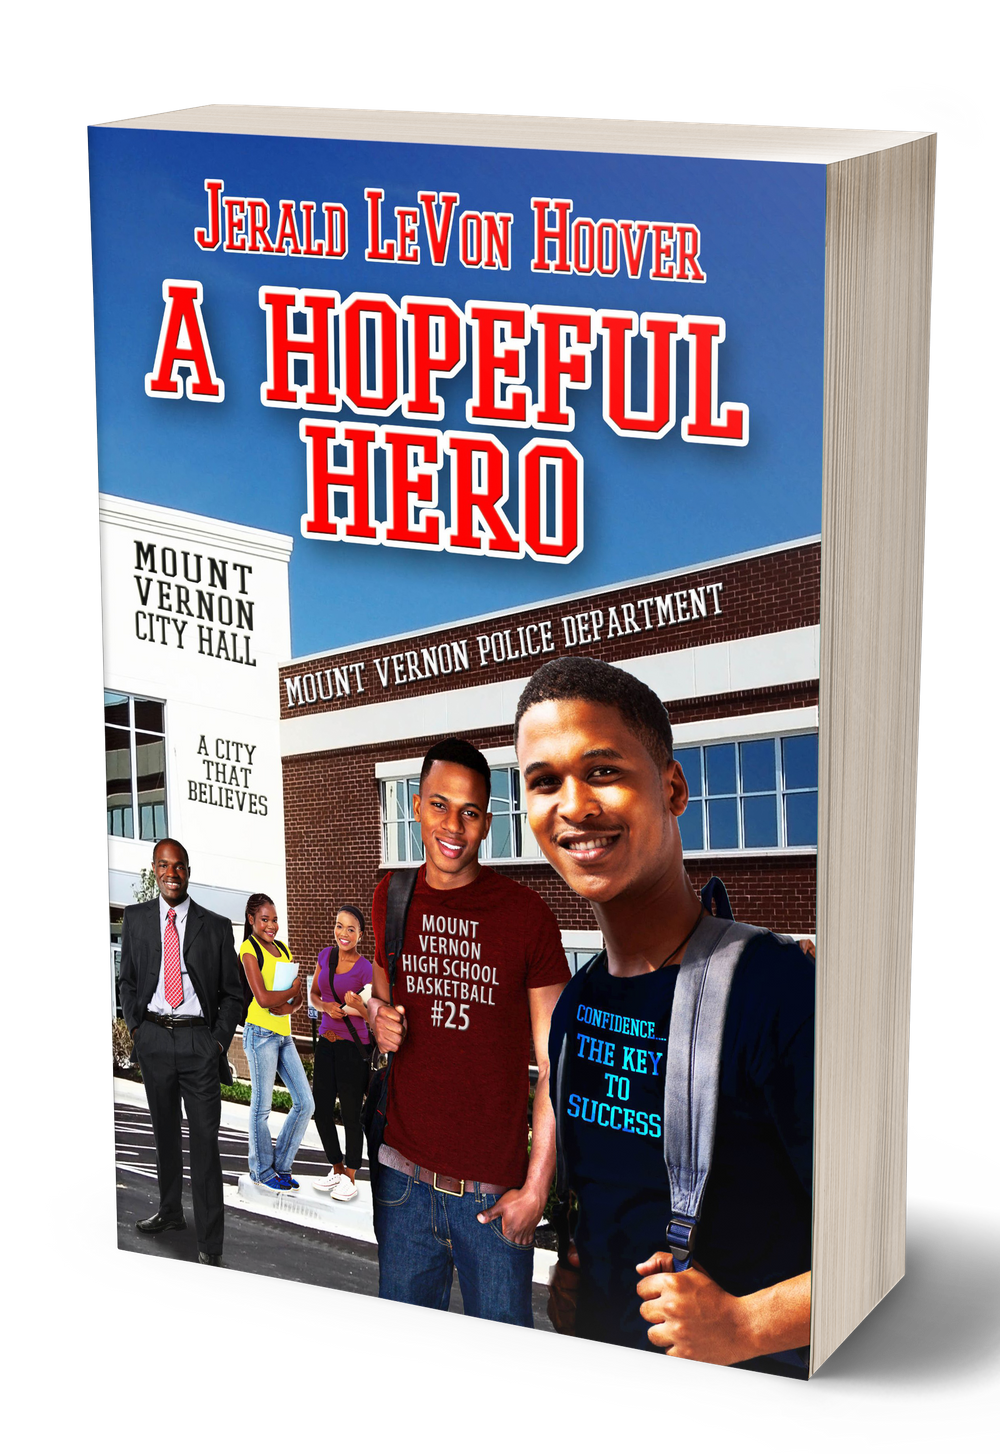 the hero book series, hero, book, series, jerald hoover, levon, class,  friend,  jerald, hoover, literacy, literate, learning. learn, social learning, emotional learning, social emotional learning, basketball, sports, friendship, camaraderie, a hopeful hero. hopeful, hero, hopeful hero